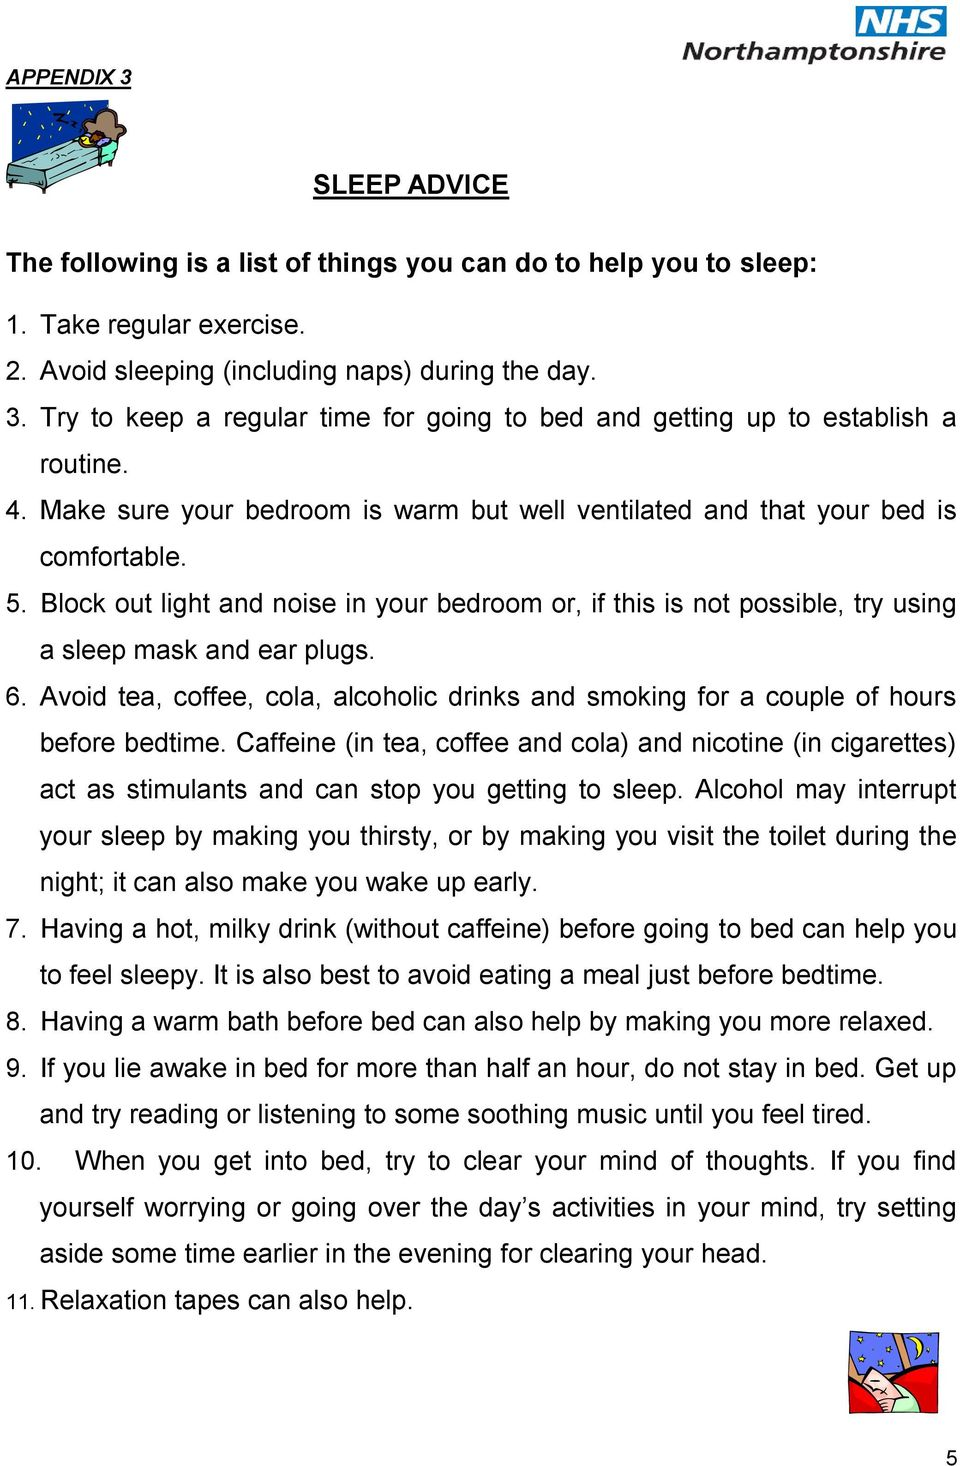 6. Avoid tea, coffee, cola, alcoholic drinks and smoking for a couple of hours before bedtime.